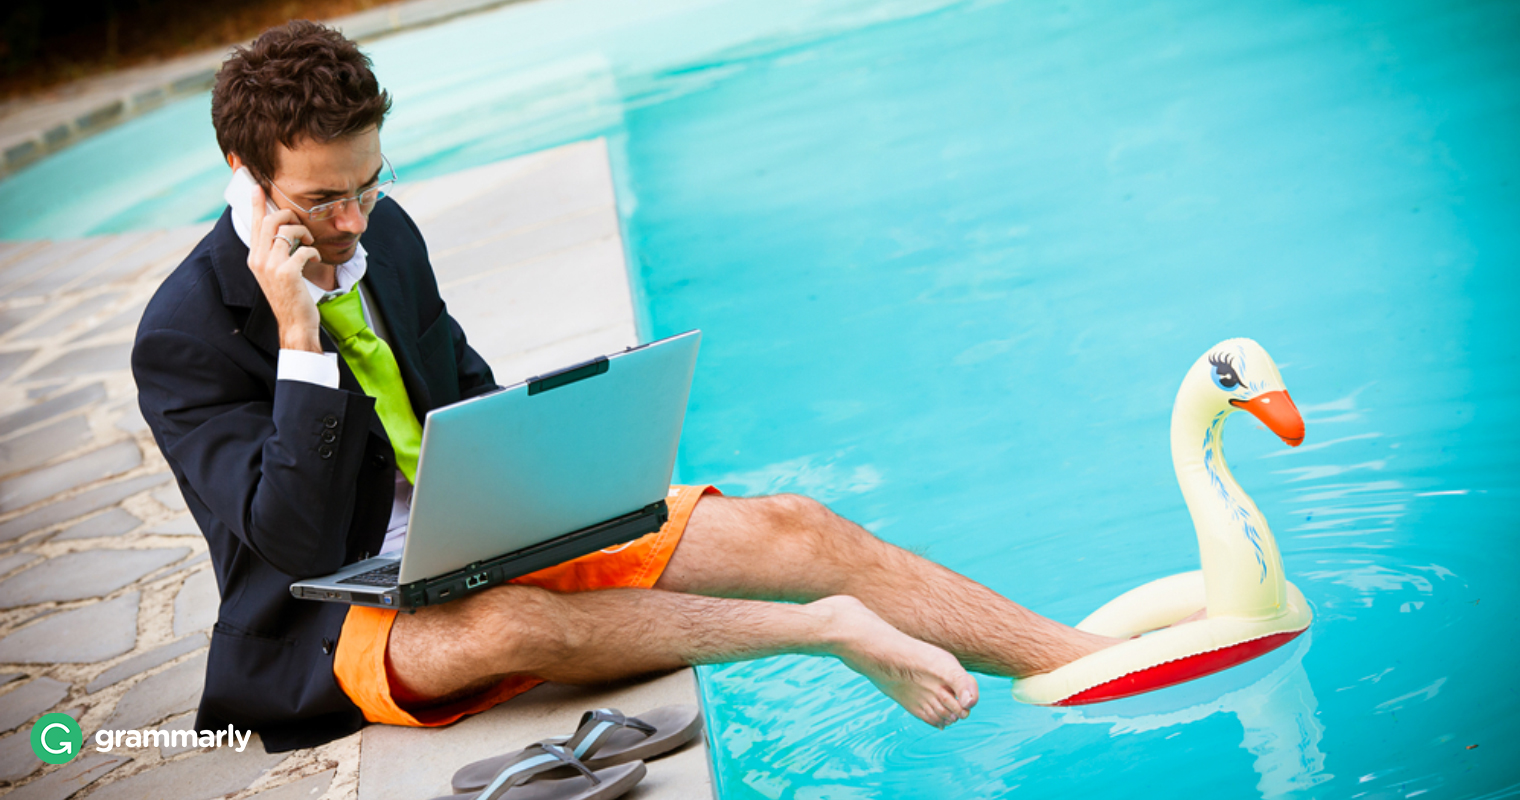 15 Ways to Stay Productive Over the Summer